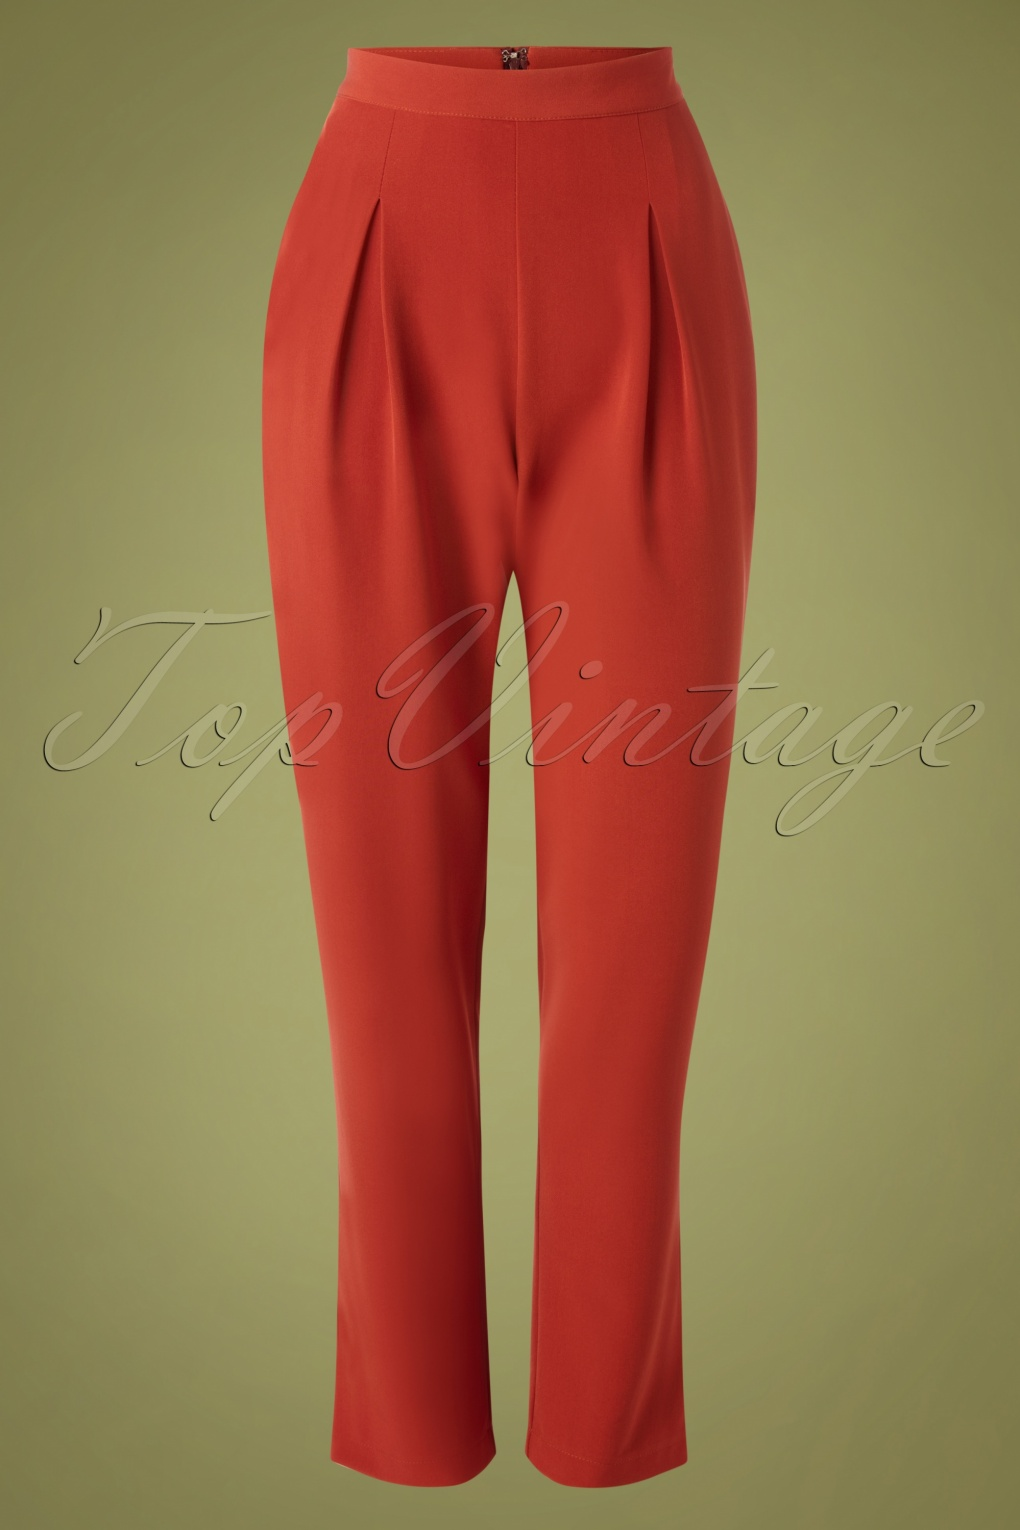 1950s Pants History for Women 50s Wear Me Everywhere Trousers in Brick Orange £35.52 AT vintagedancer.com